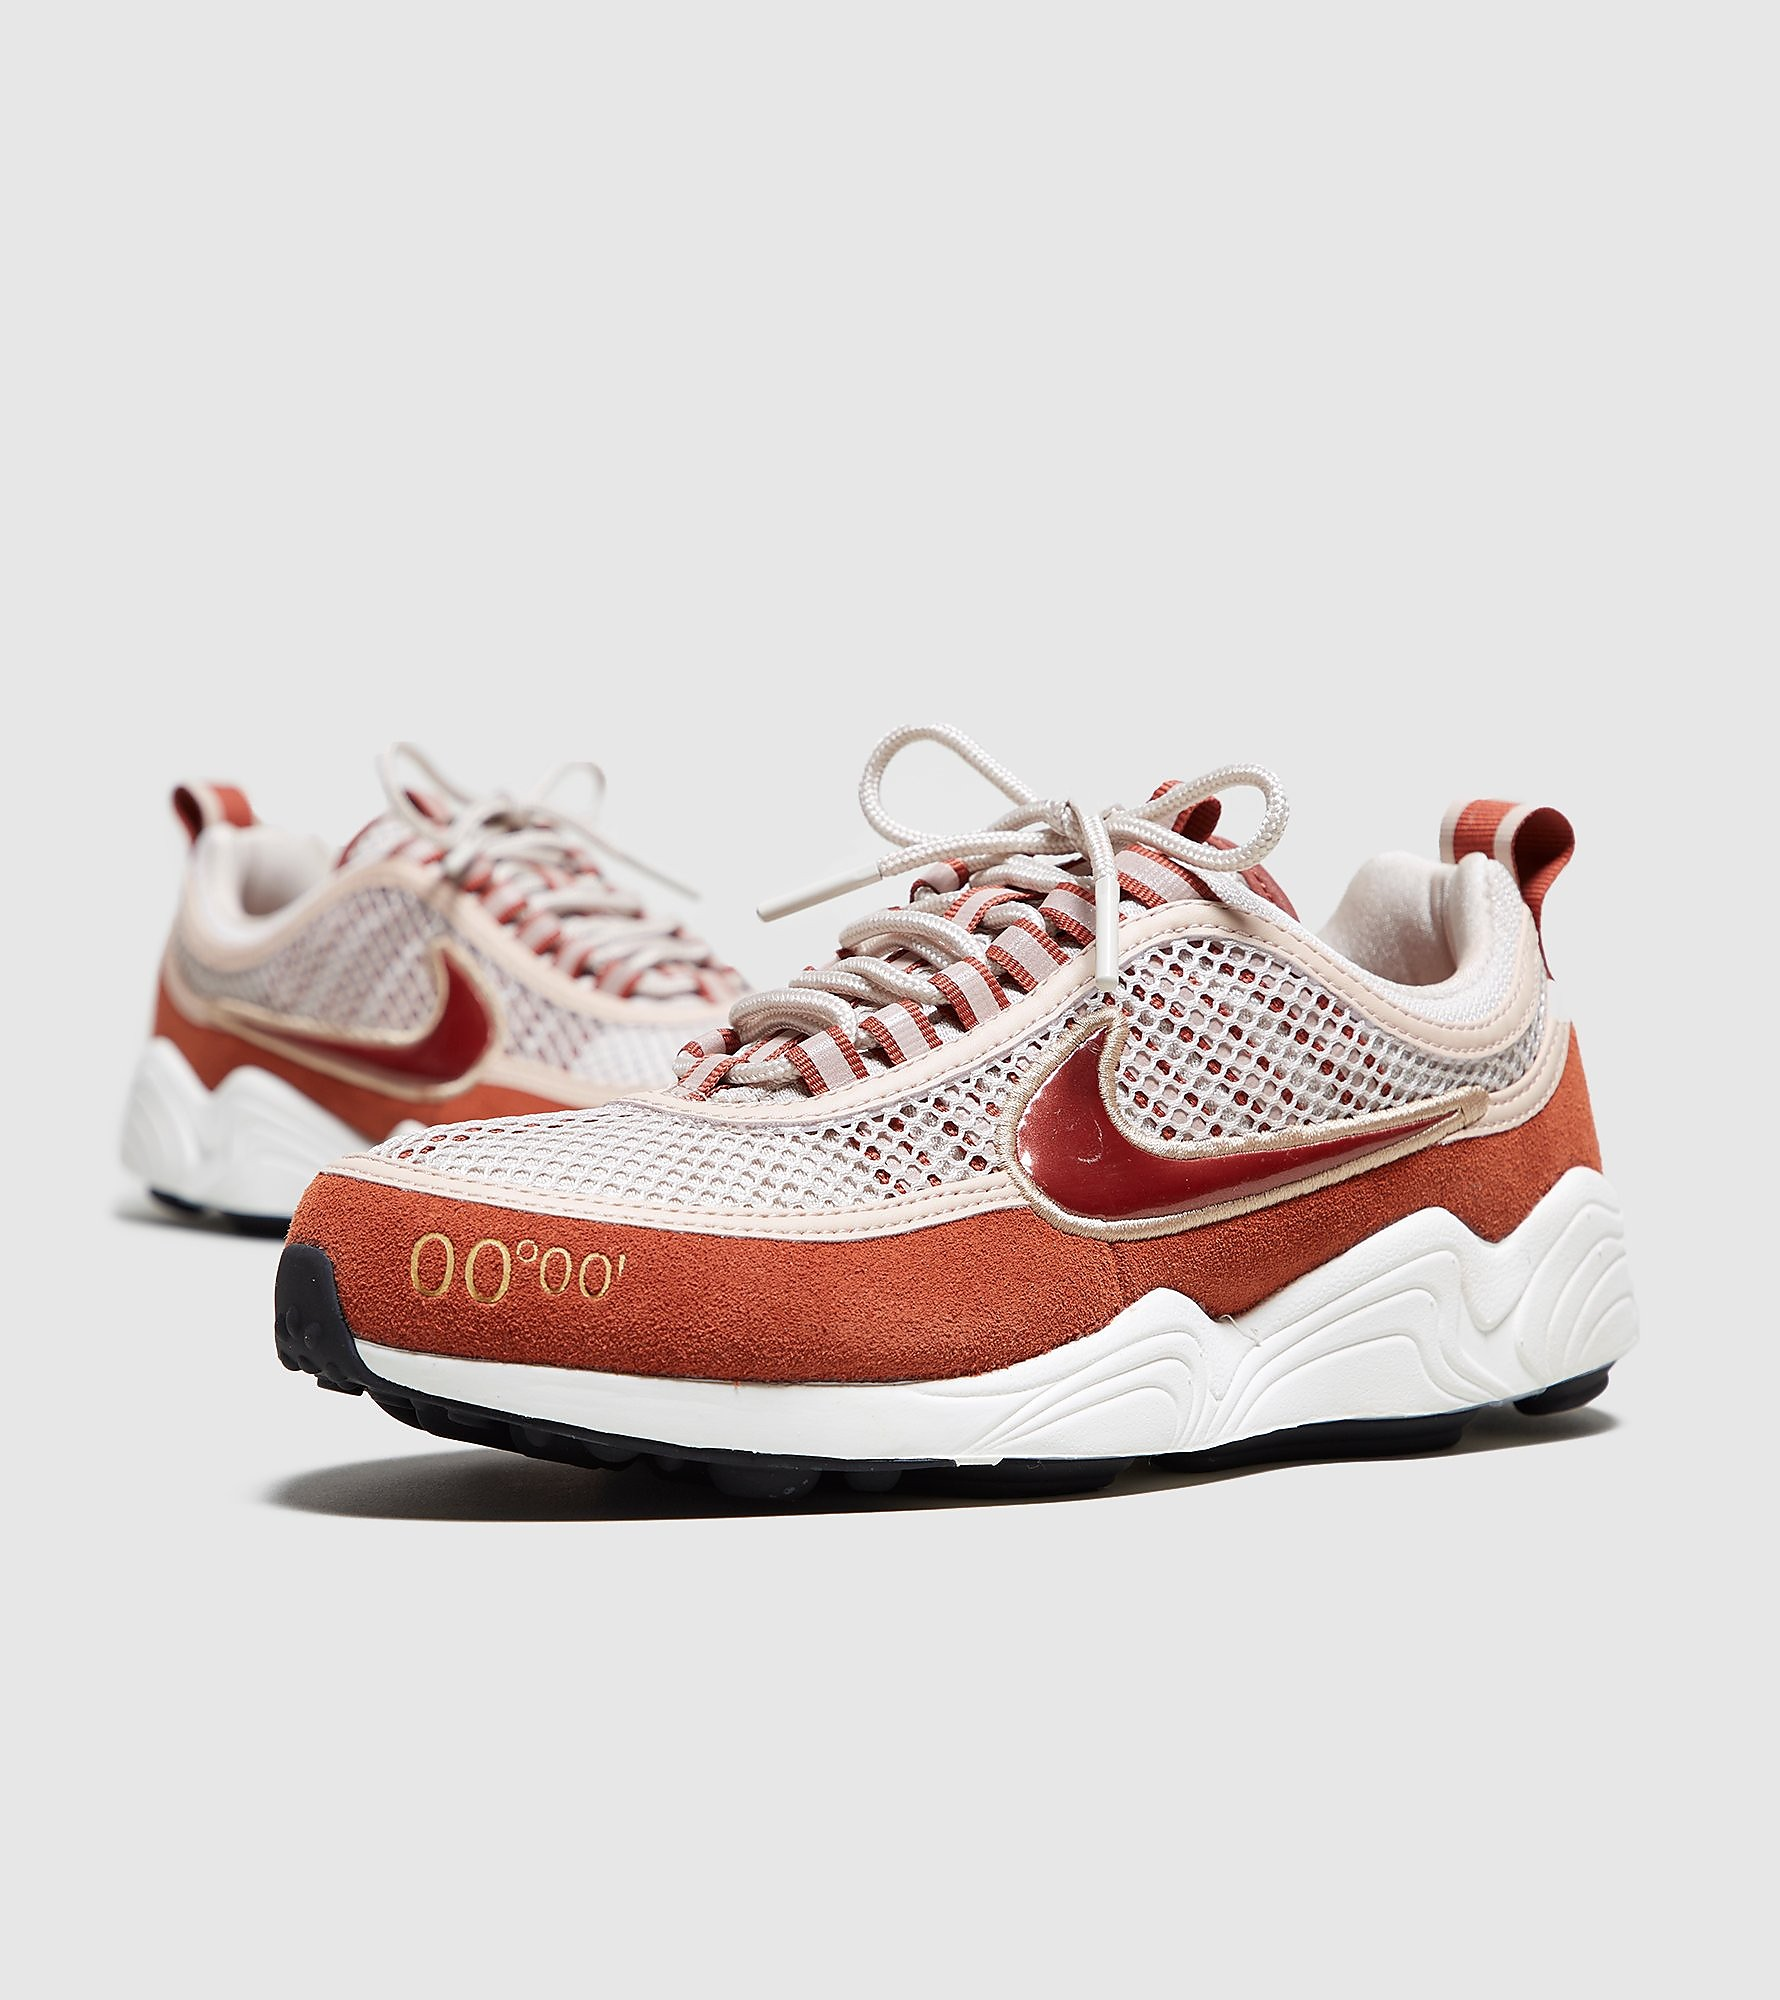 Nike Air Zoom Spiridon 'GMT Pack' Women's